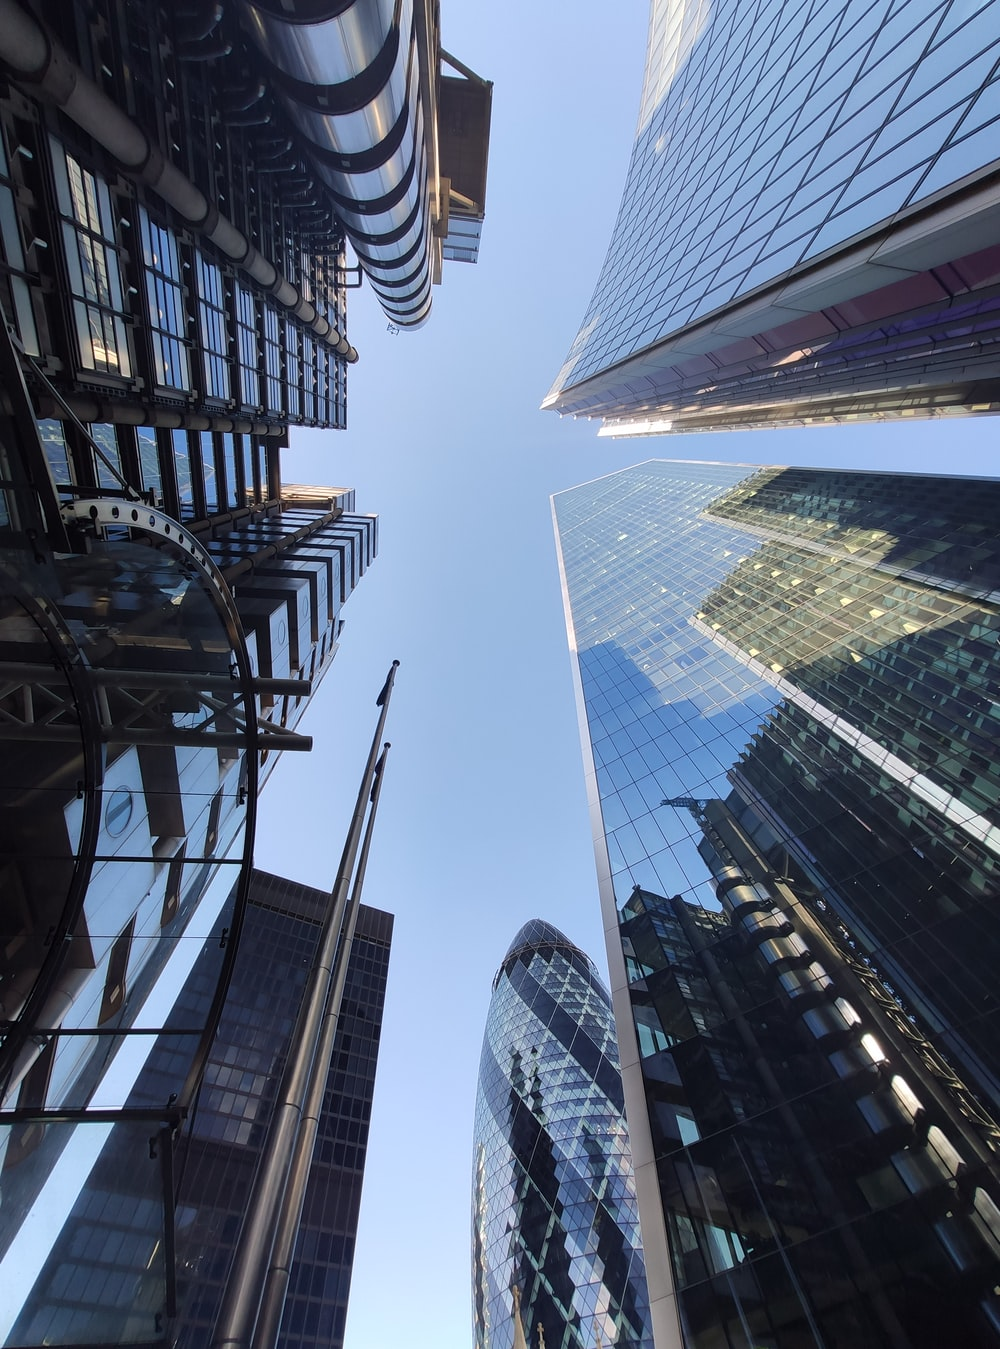 low angle photography of high rise buildings